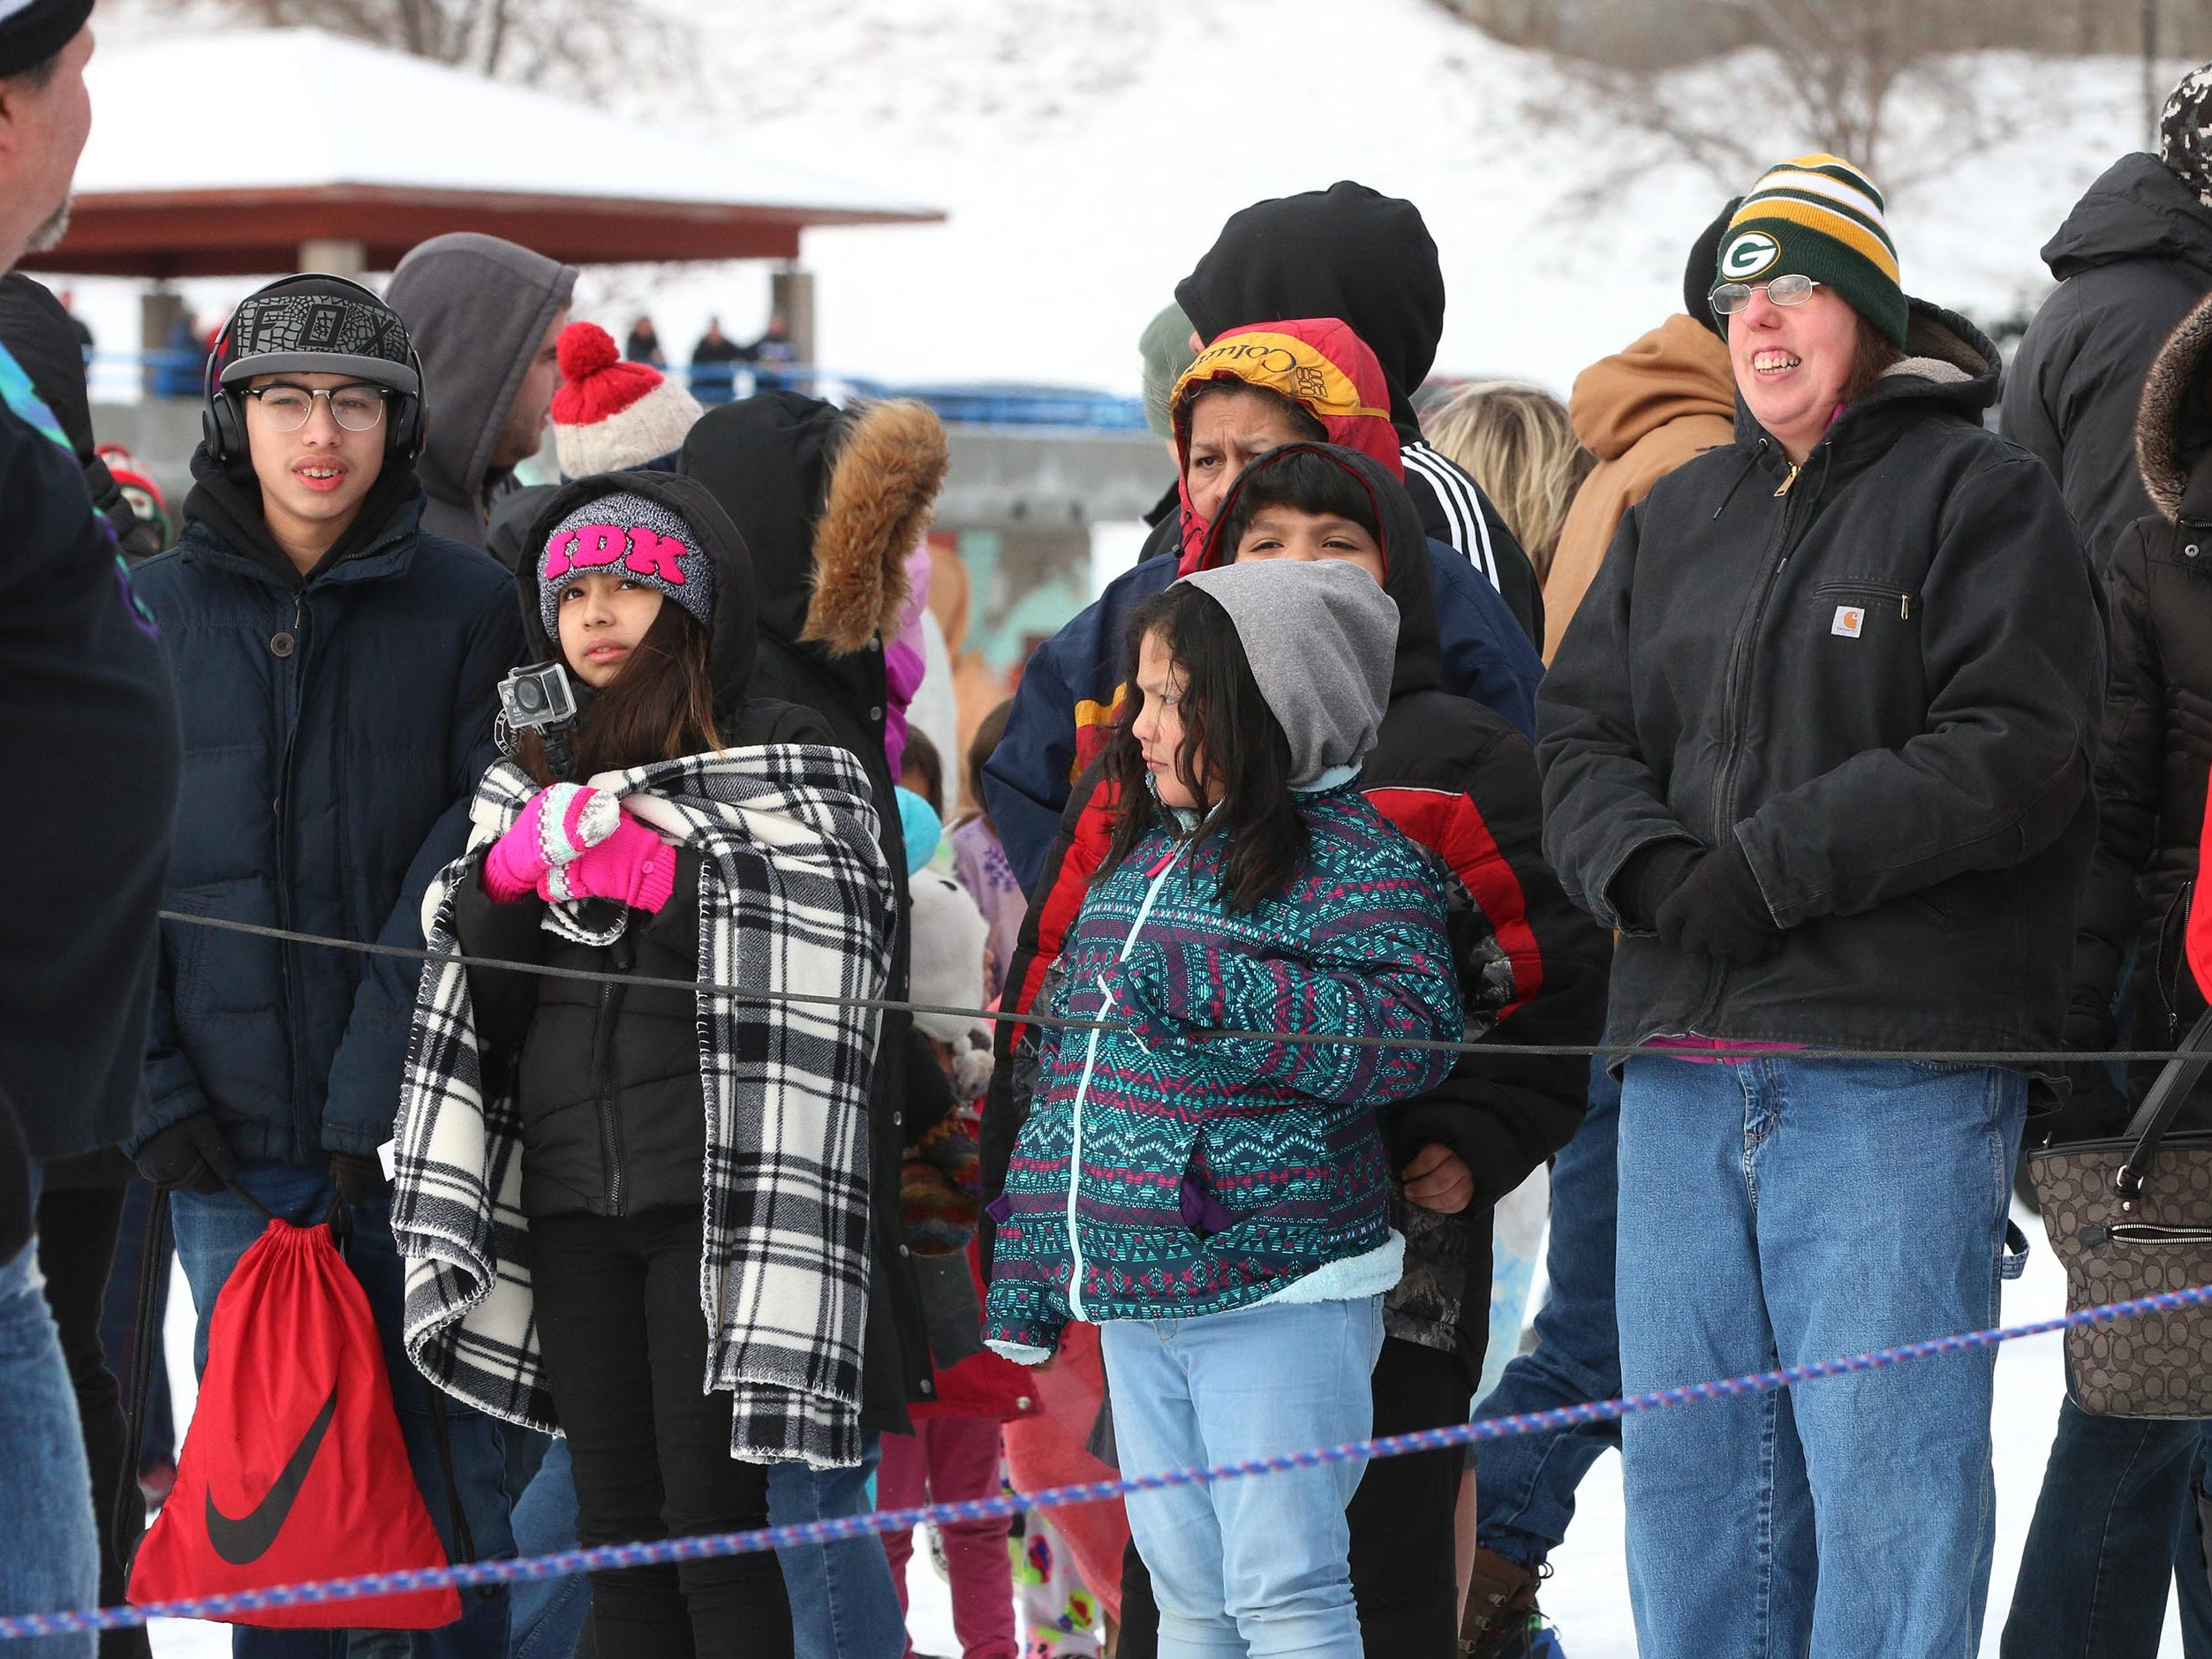 Spectators, dressed warm for the weather wait for the start of the Polar Bear Plunge, Tuesday, January 1, 2019, at Deland Park in Sheboygan, Wis.